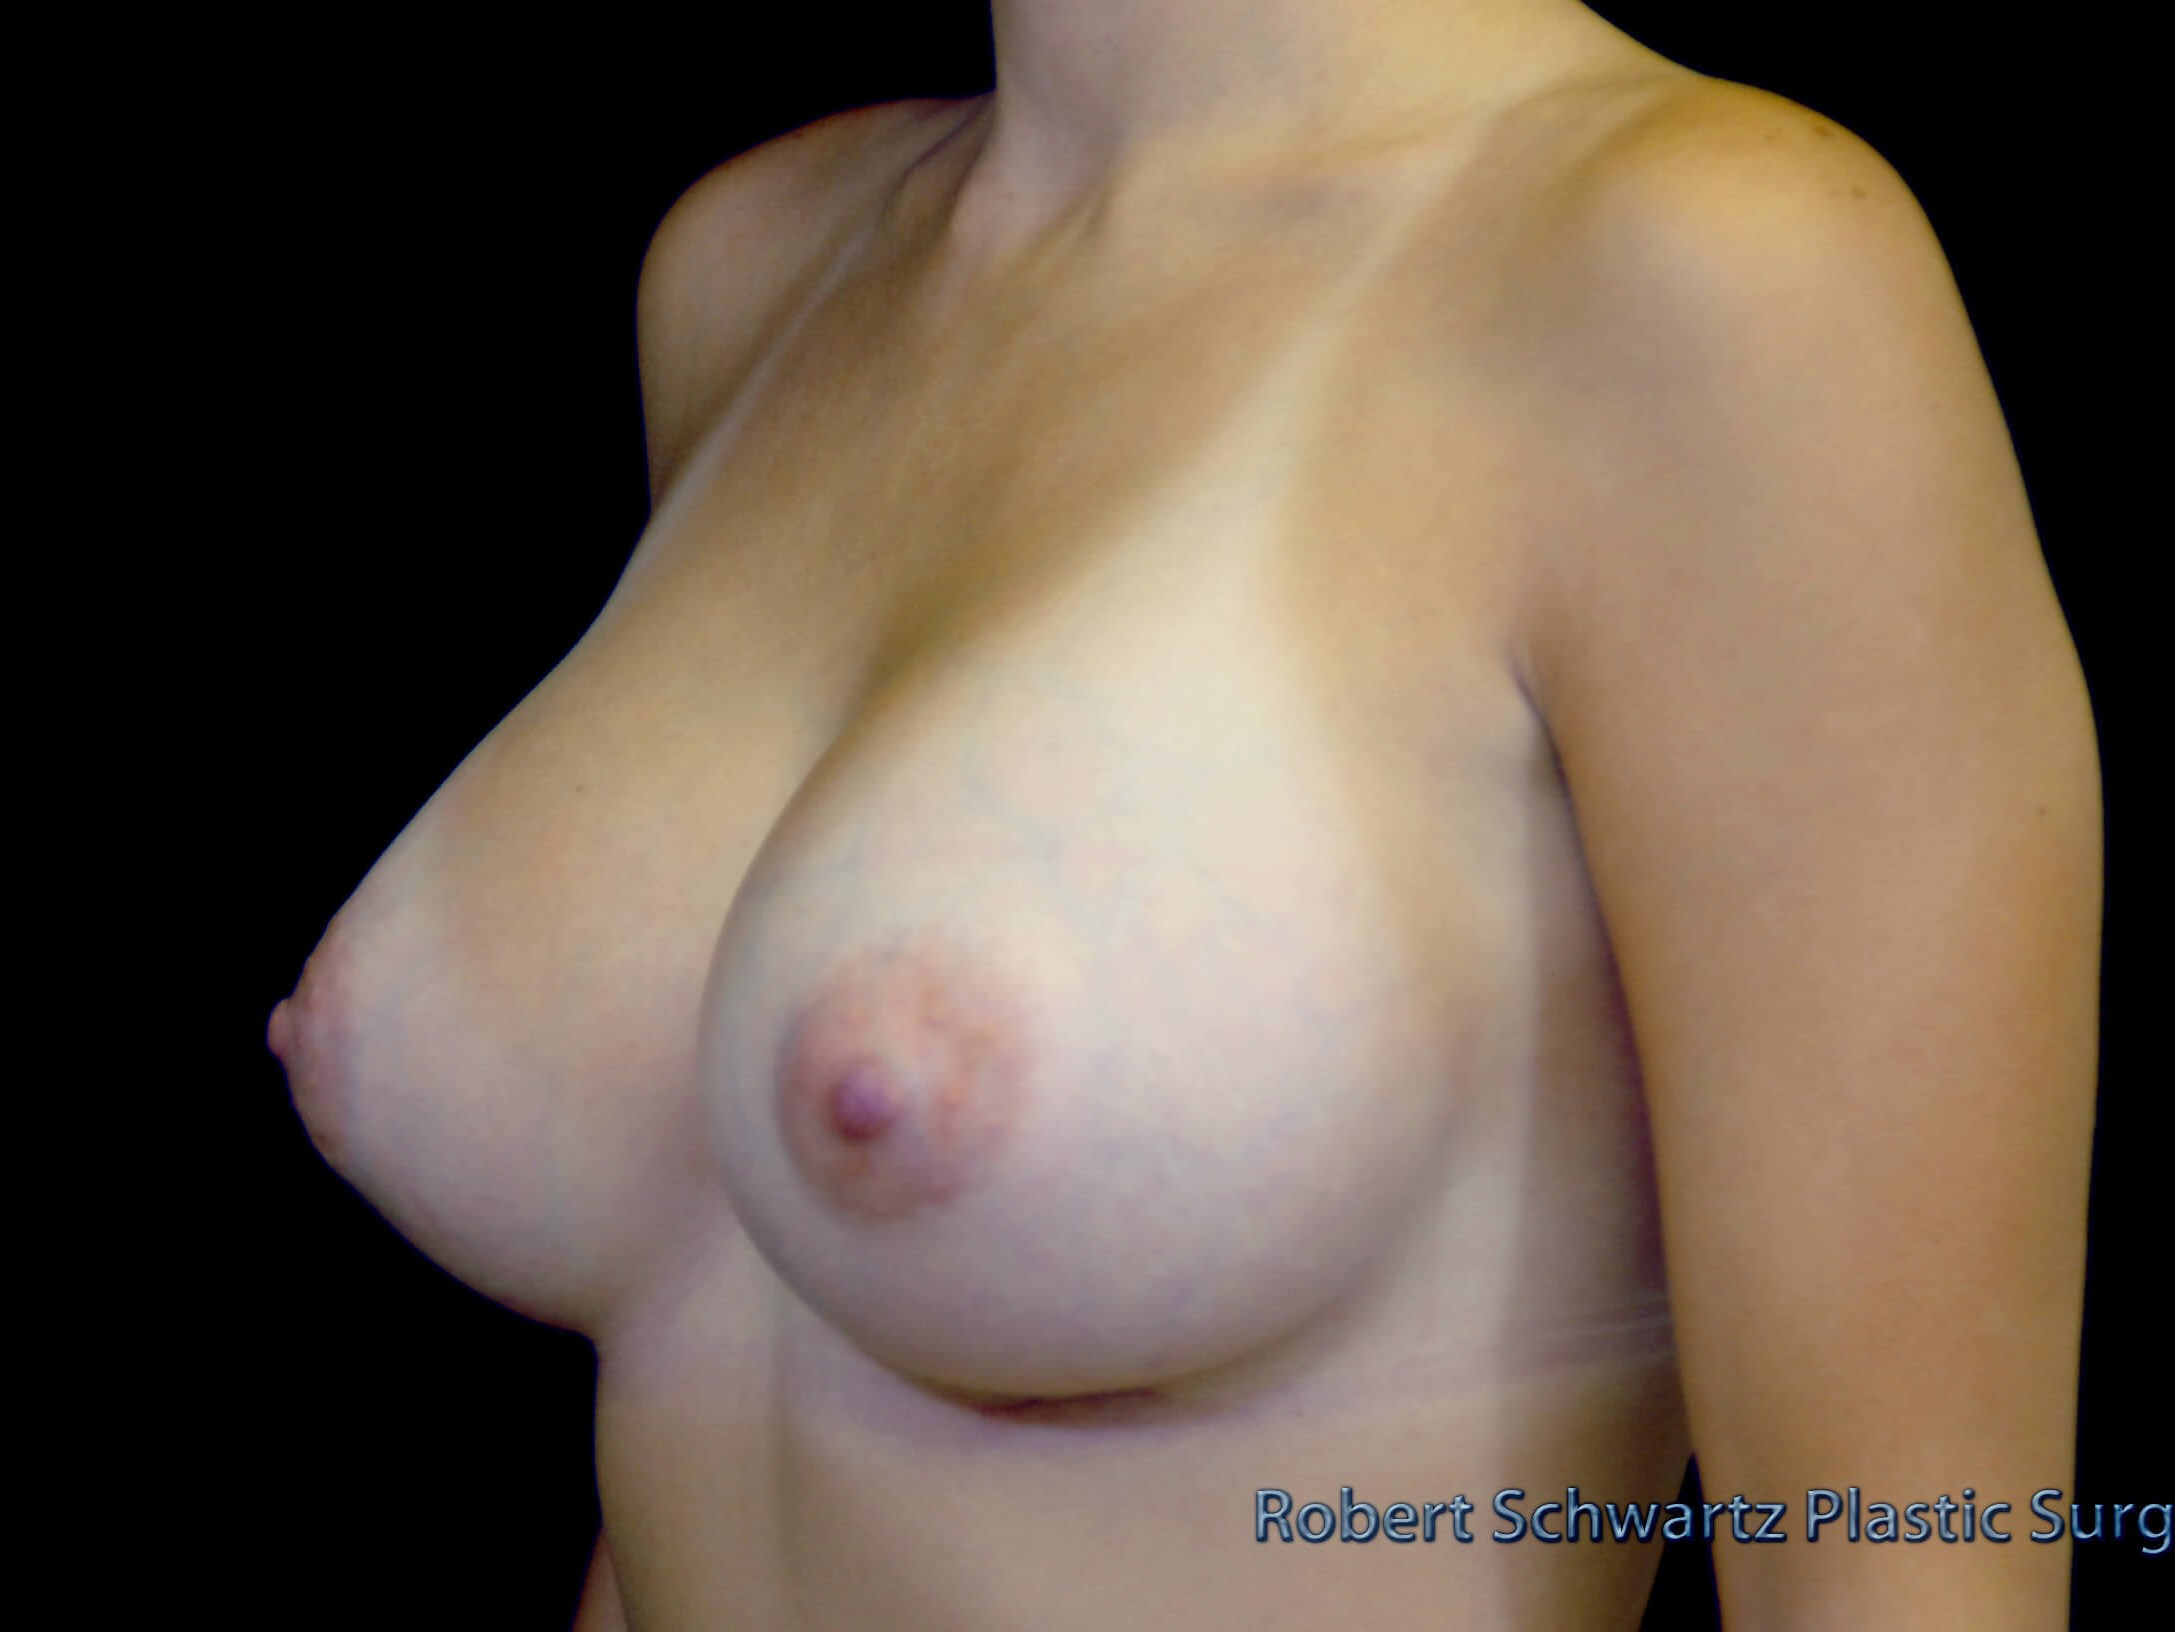 FRISCO, TEXAS WOMAN HAS BREAST AUGMENTATION WITH SILICONE GEL IMPLANTS